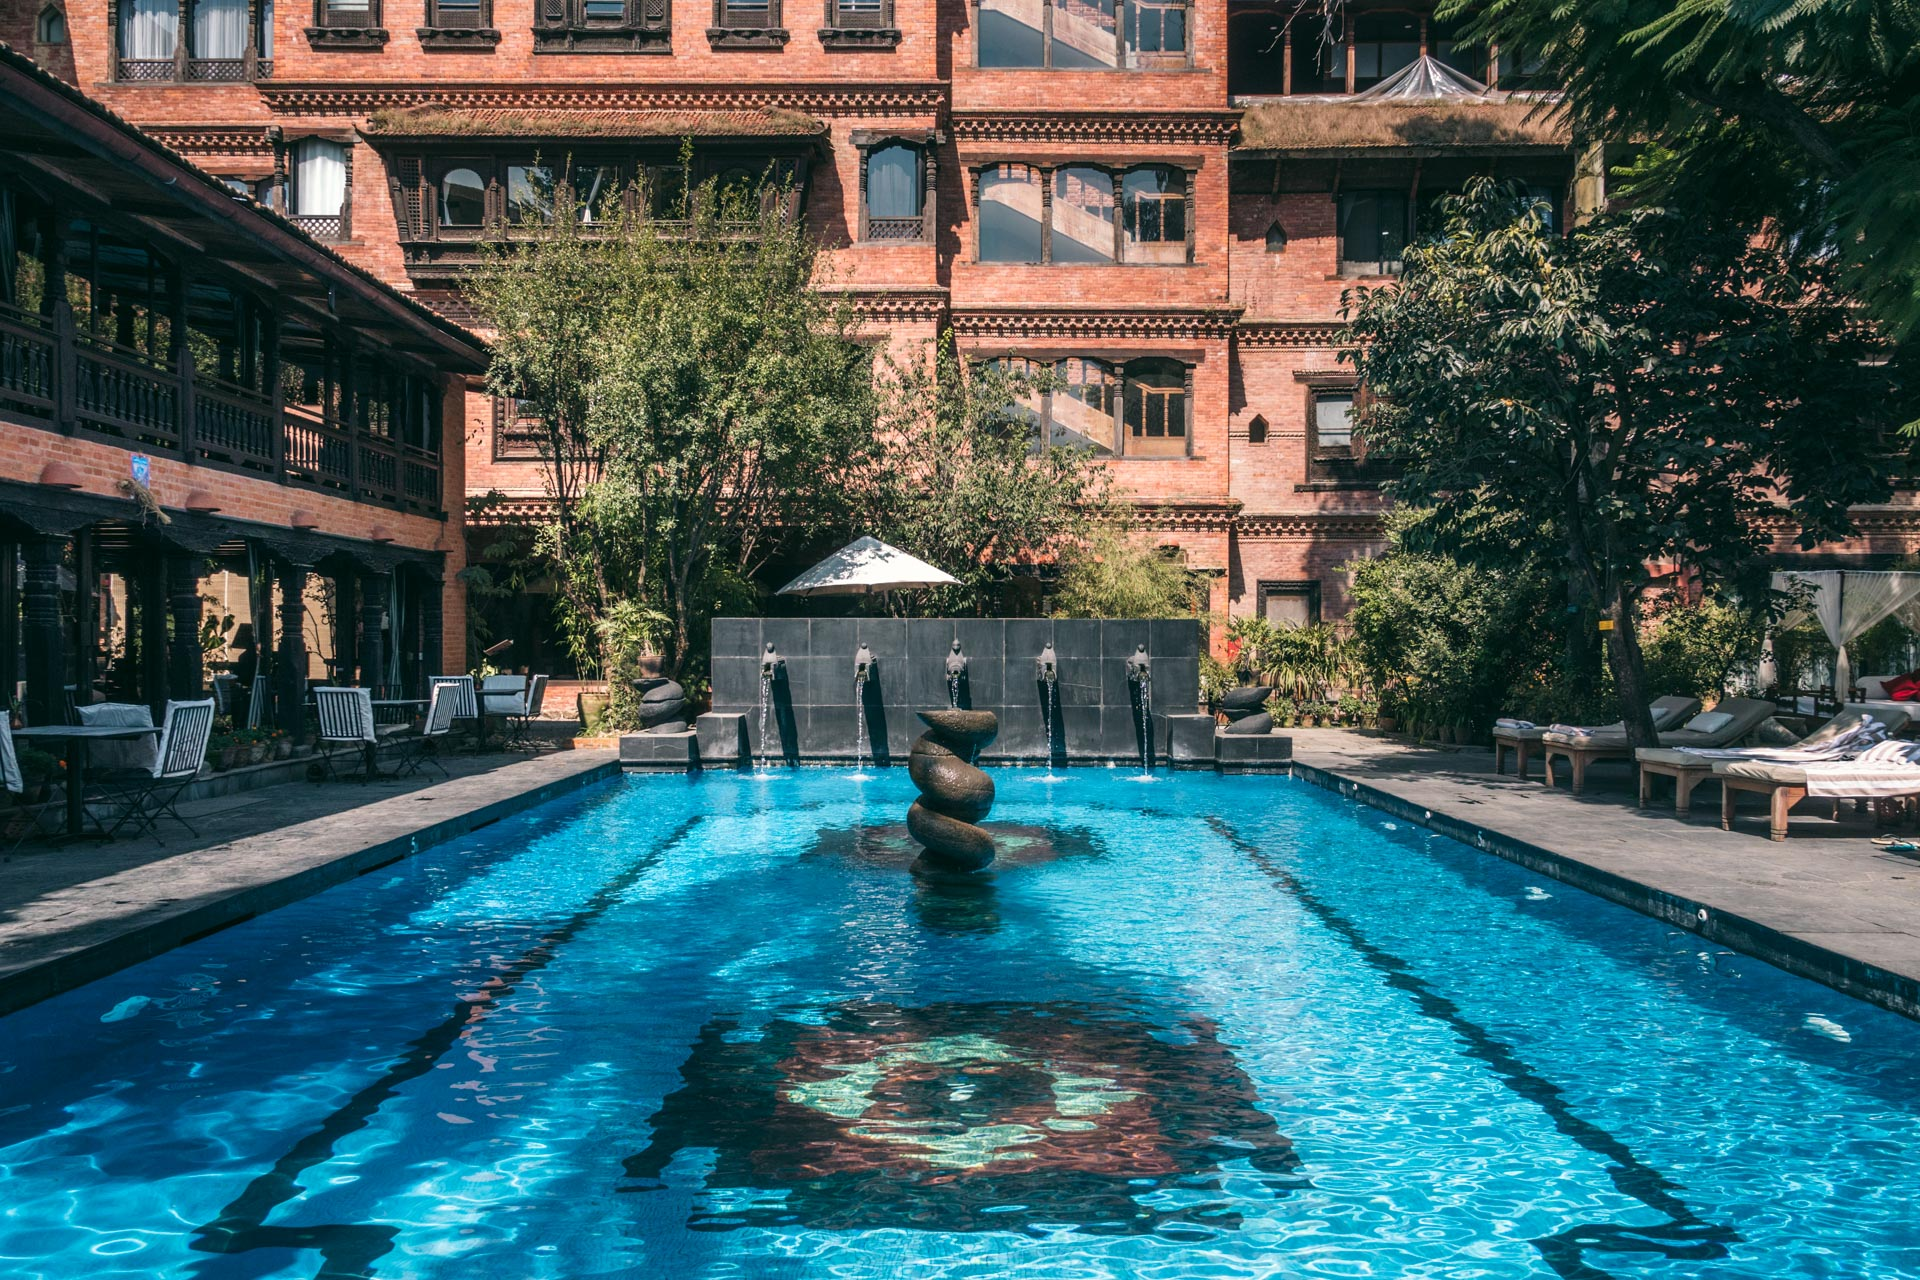 Review of Dwarika's Hotel in Kathmandu: A Peaceful Heritage Hotel in Nepal's Busy Capital